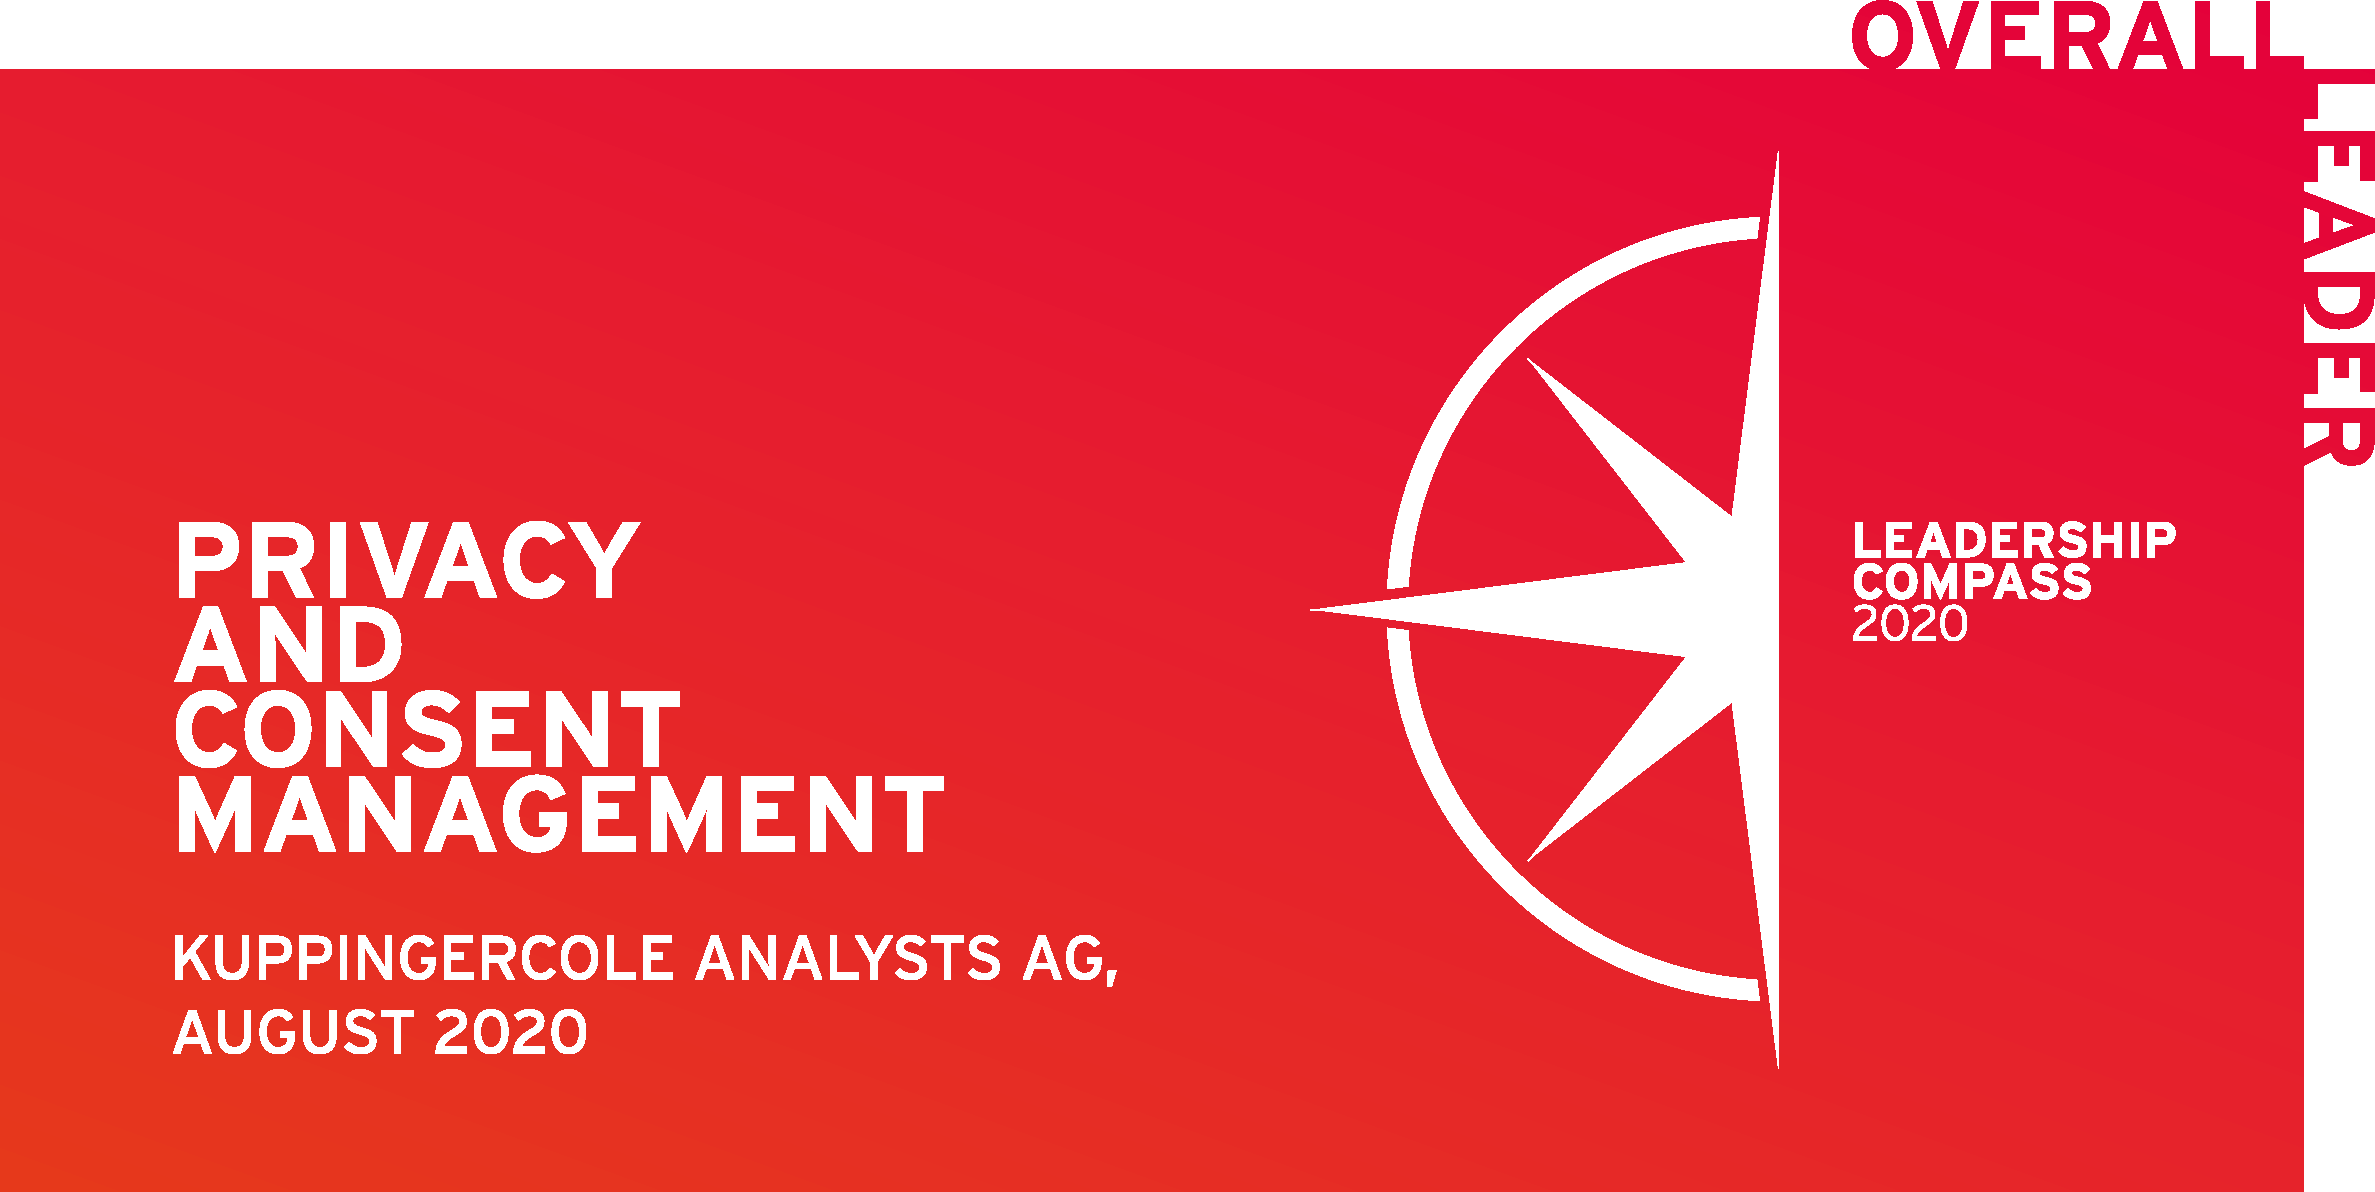 Syrenis Ltd has been recognised as a product, innovation and overall leader as part of KuppingerCole Analysts 2020 Report for Privacy and Consent Management